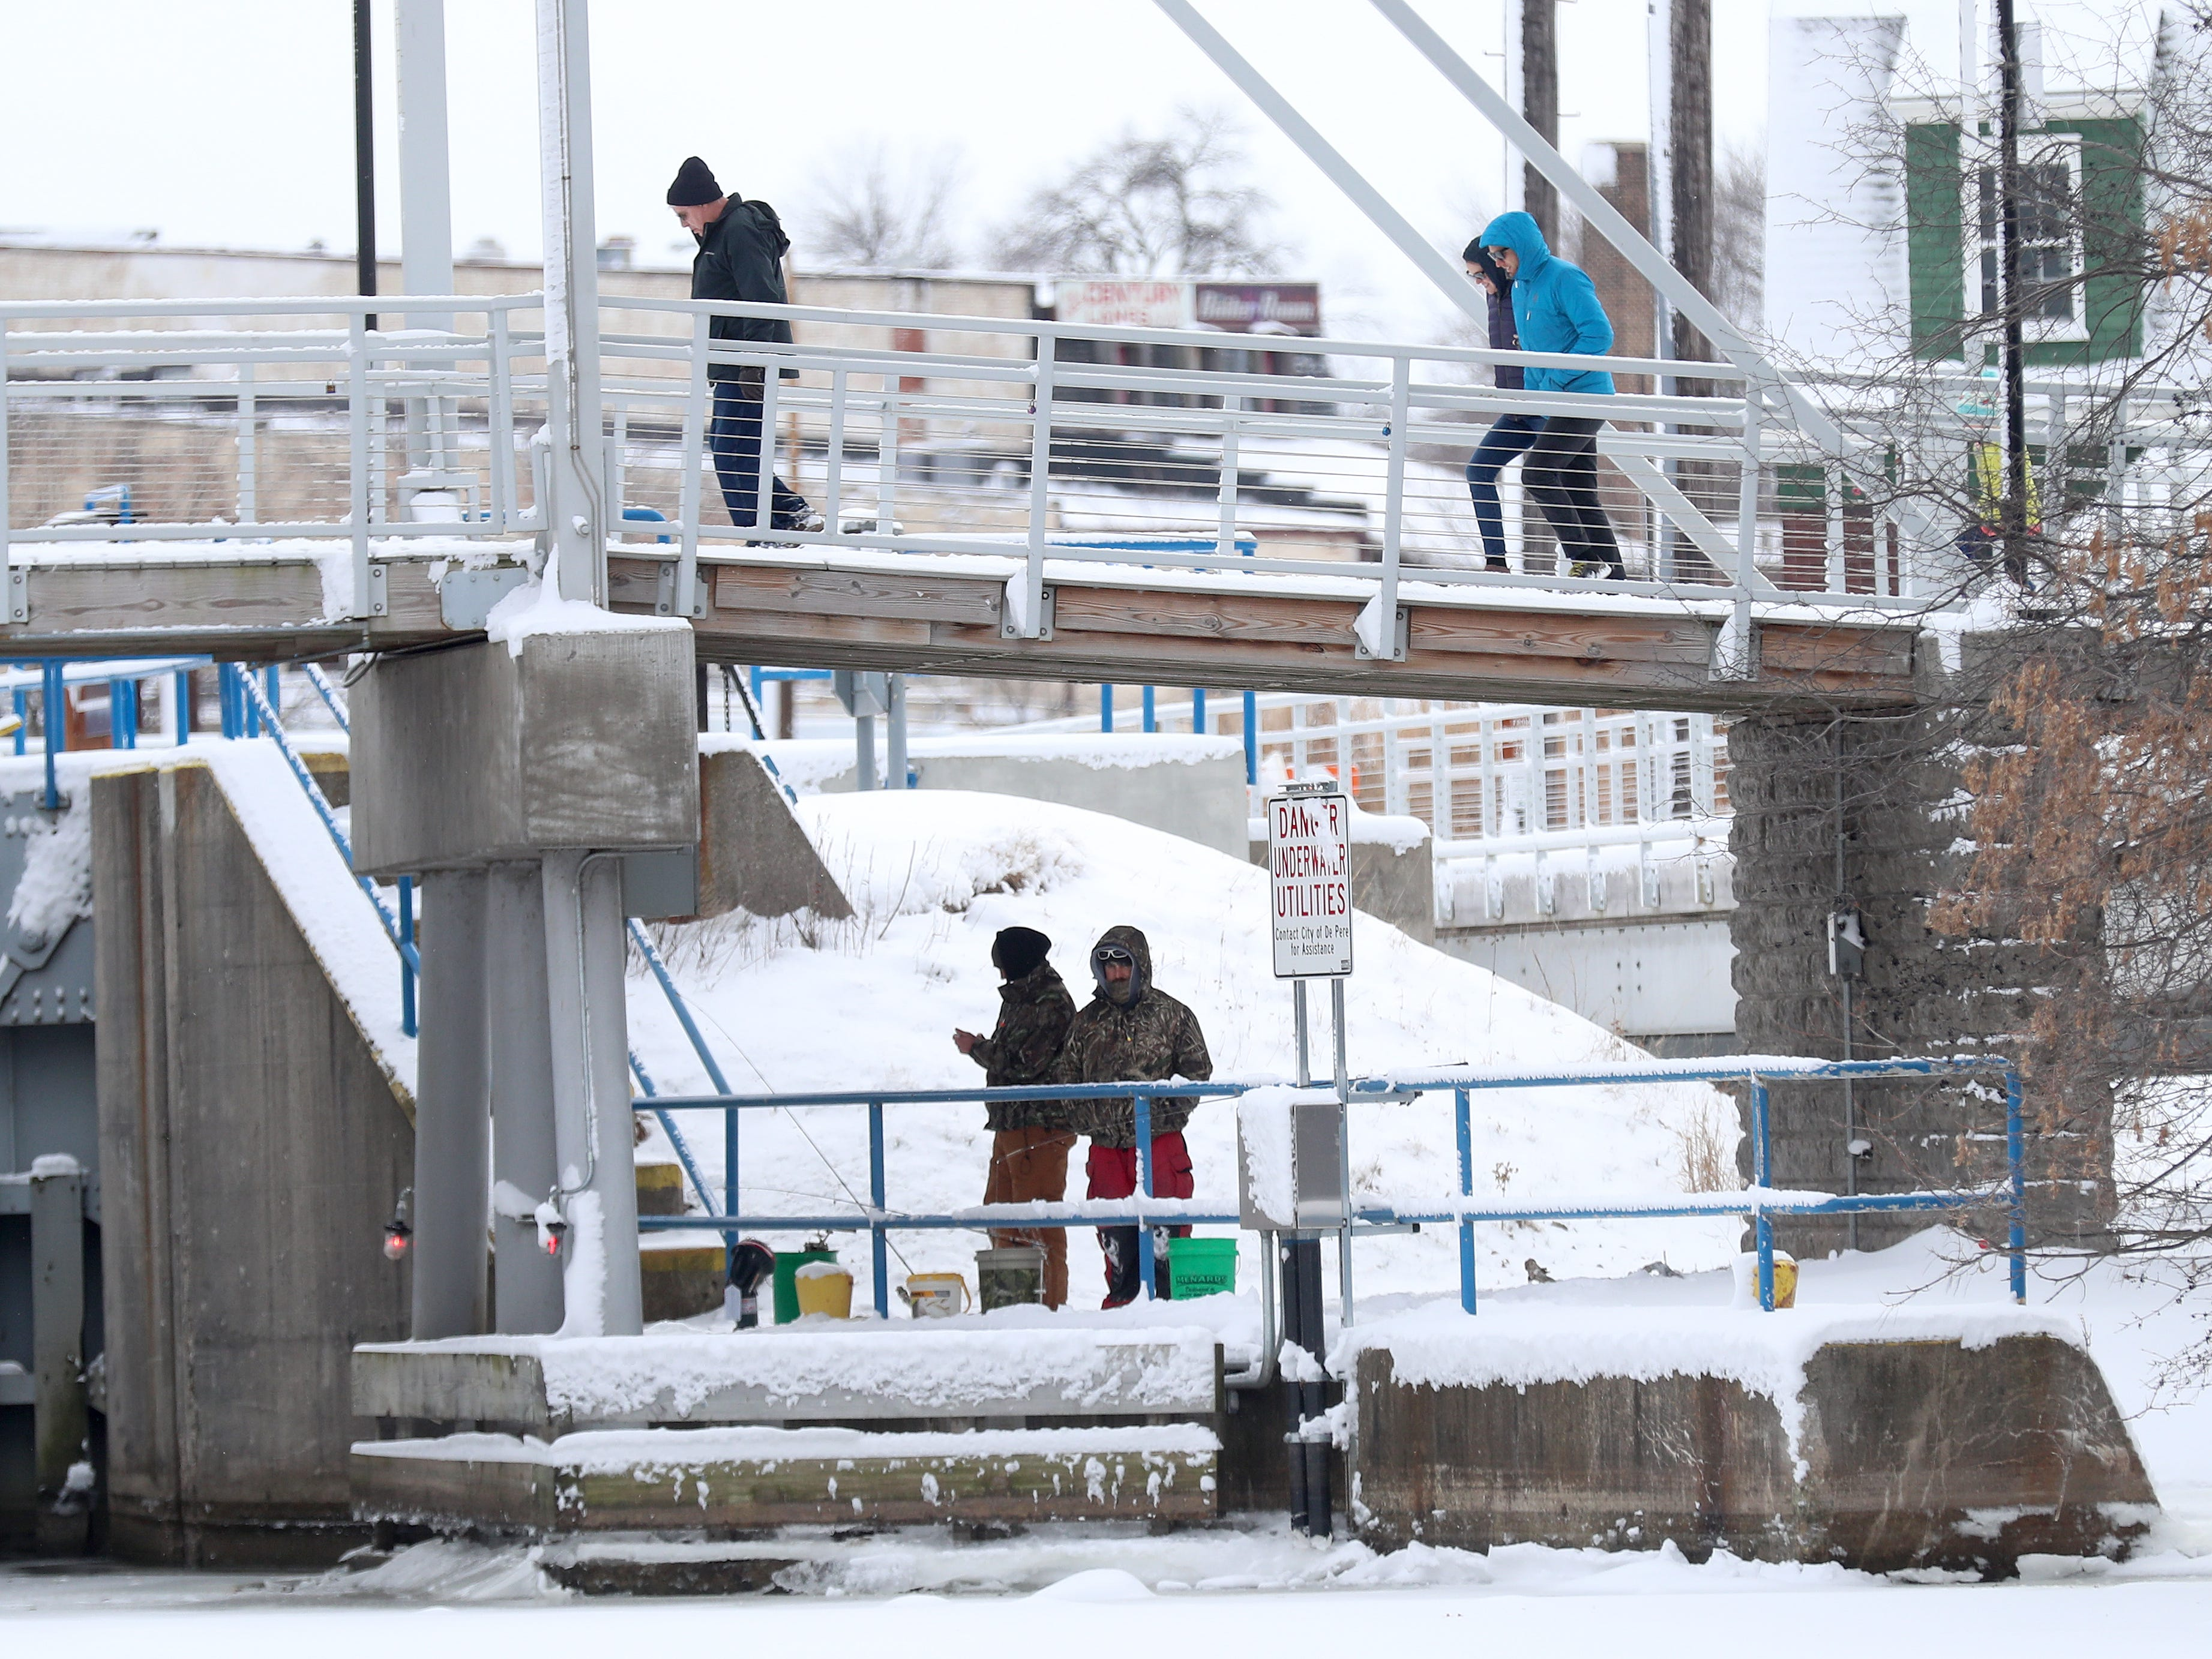 Snowy strollers and ice fishermen enjoy New Years Day at the De Pere lock adjacent to Voyageur Park Tuesday, January 1, 2019 in De Pere, Wis